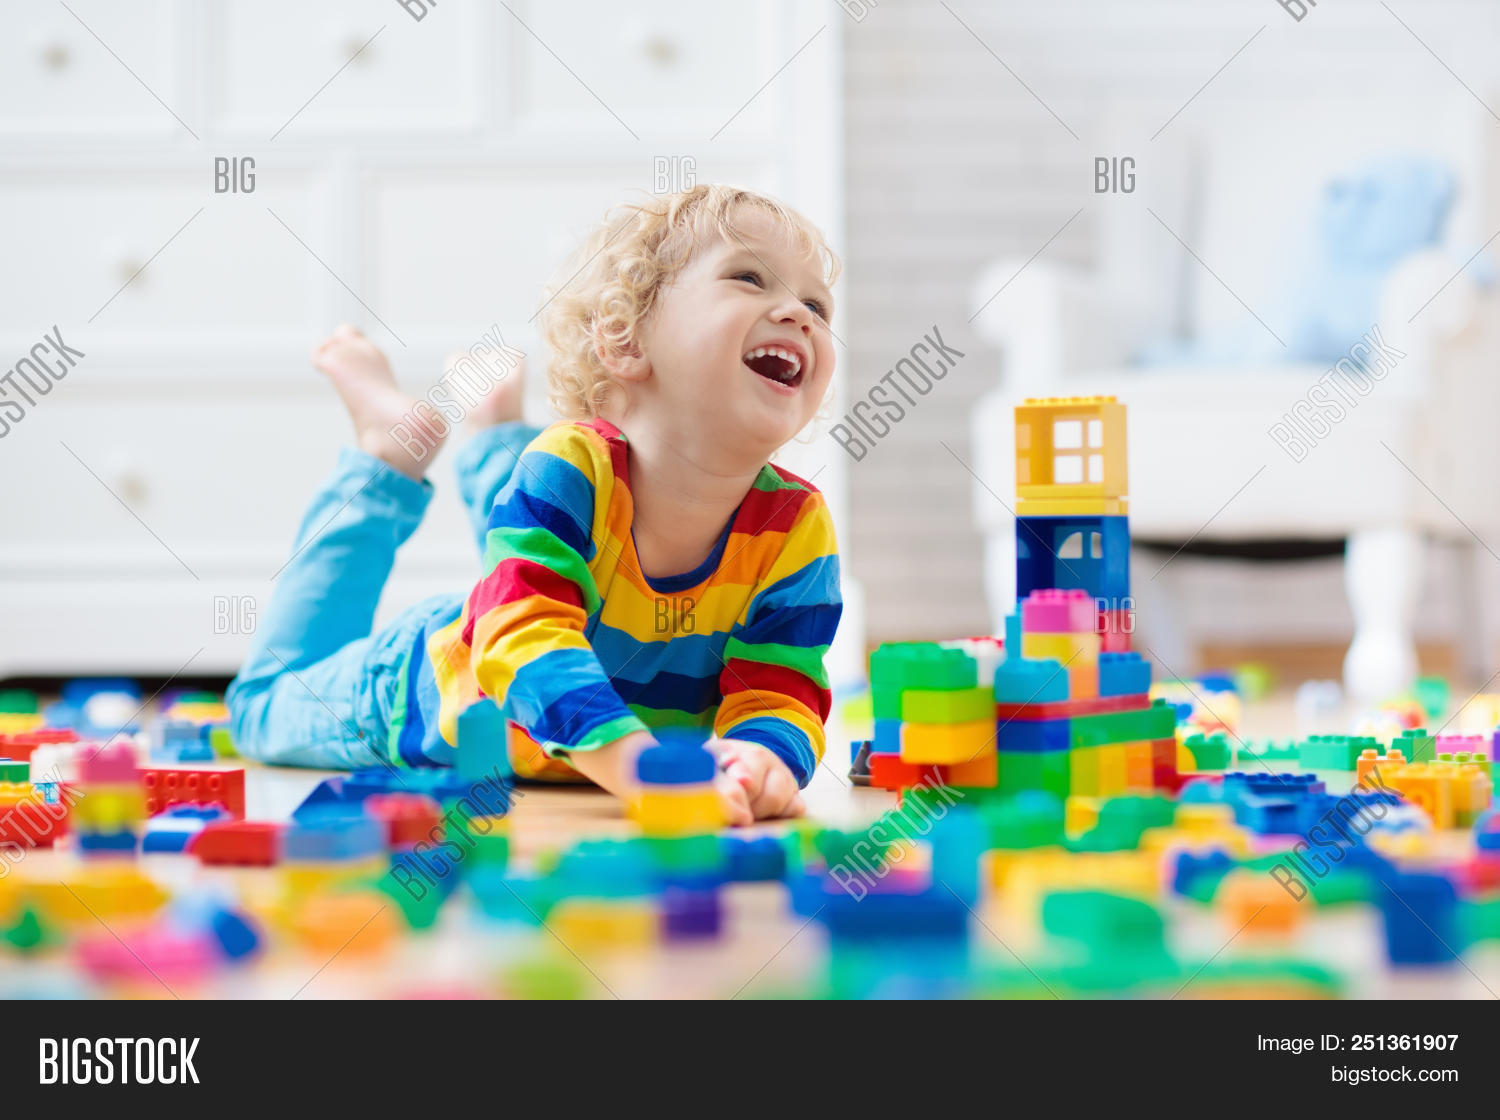 baby,block,blond,boy,bricks,build,building,care,child,childcare,childhood,children,color,colorful,construction,creative,cute,day,daycare,development,education,educational,elementary,floor,fun,funny,game,home,house,interior,kid,kindergarten,learning,little,mess,nursery,plastic,play,playing,preschool,preschooler,rainbow,room,toddler,tower,toy,white